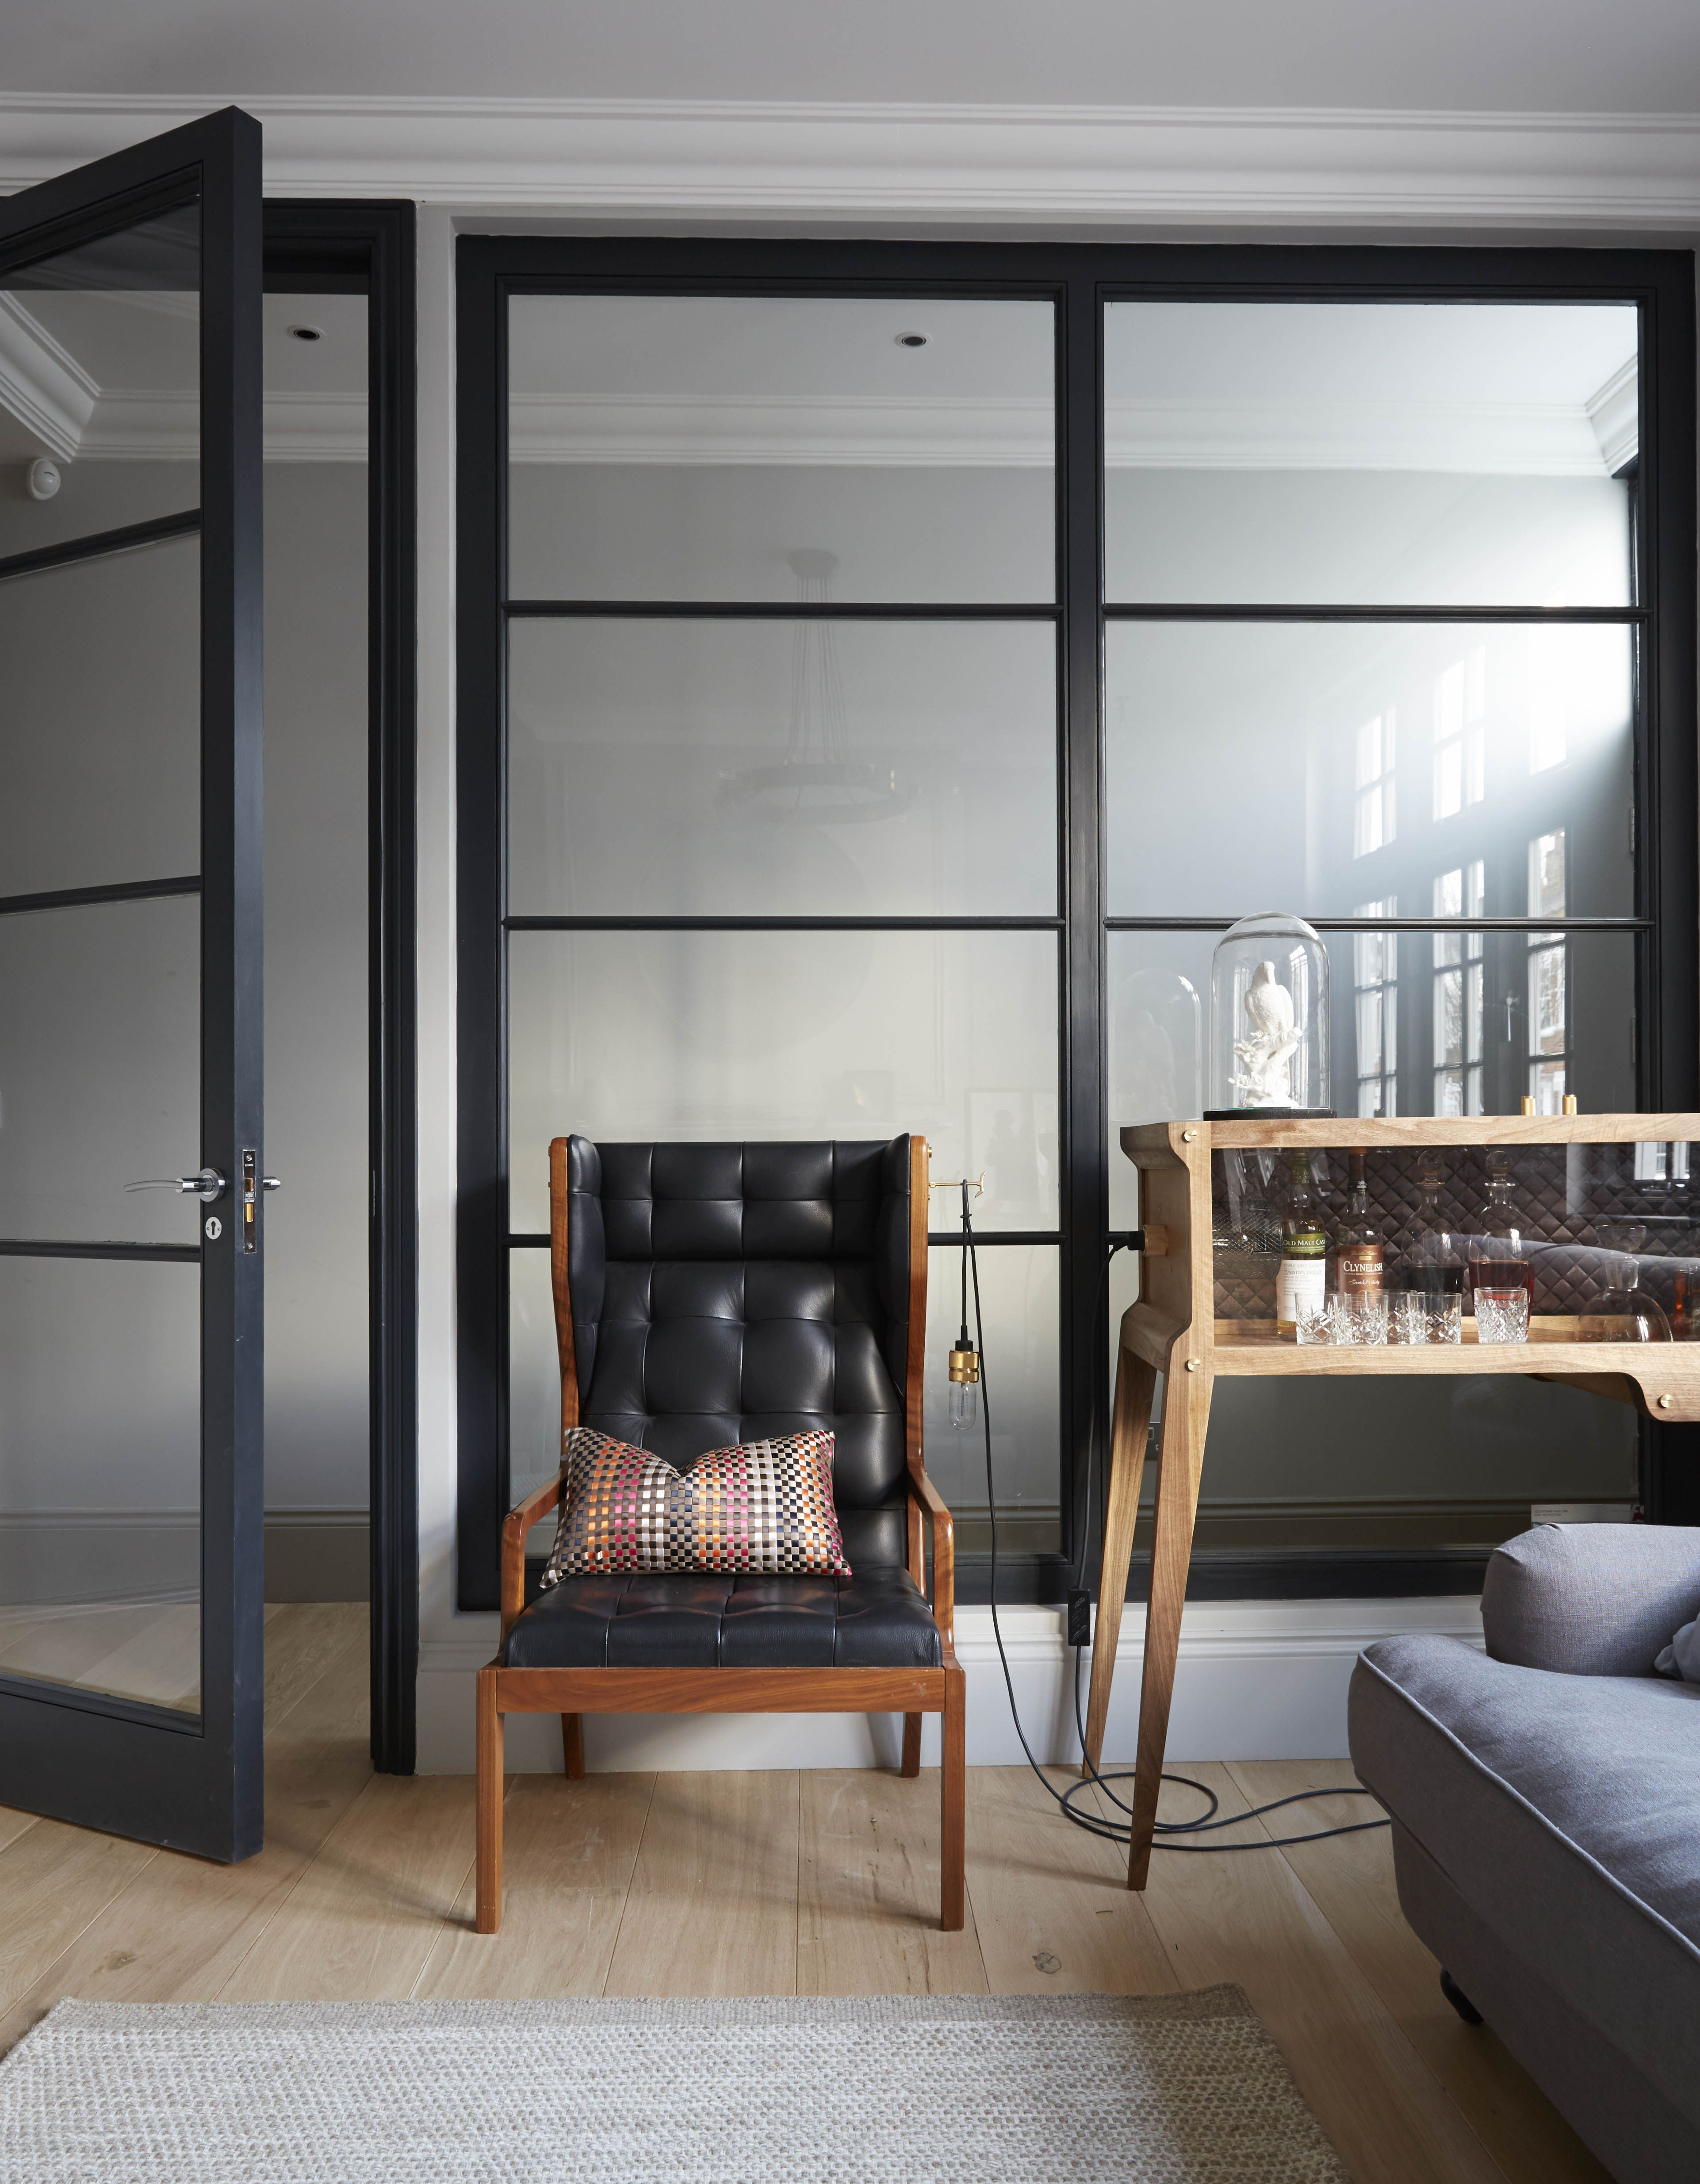 Crittall Style Timber Windows By Minale Mann Glazed Walls Home Living Etc